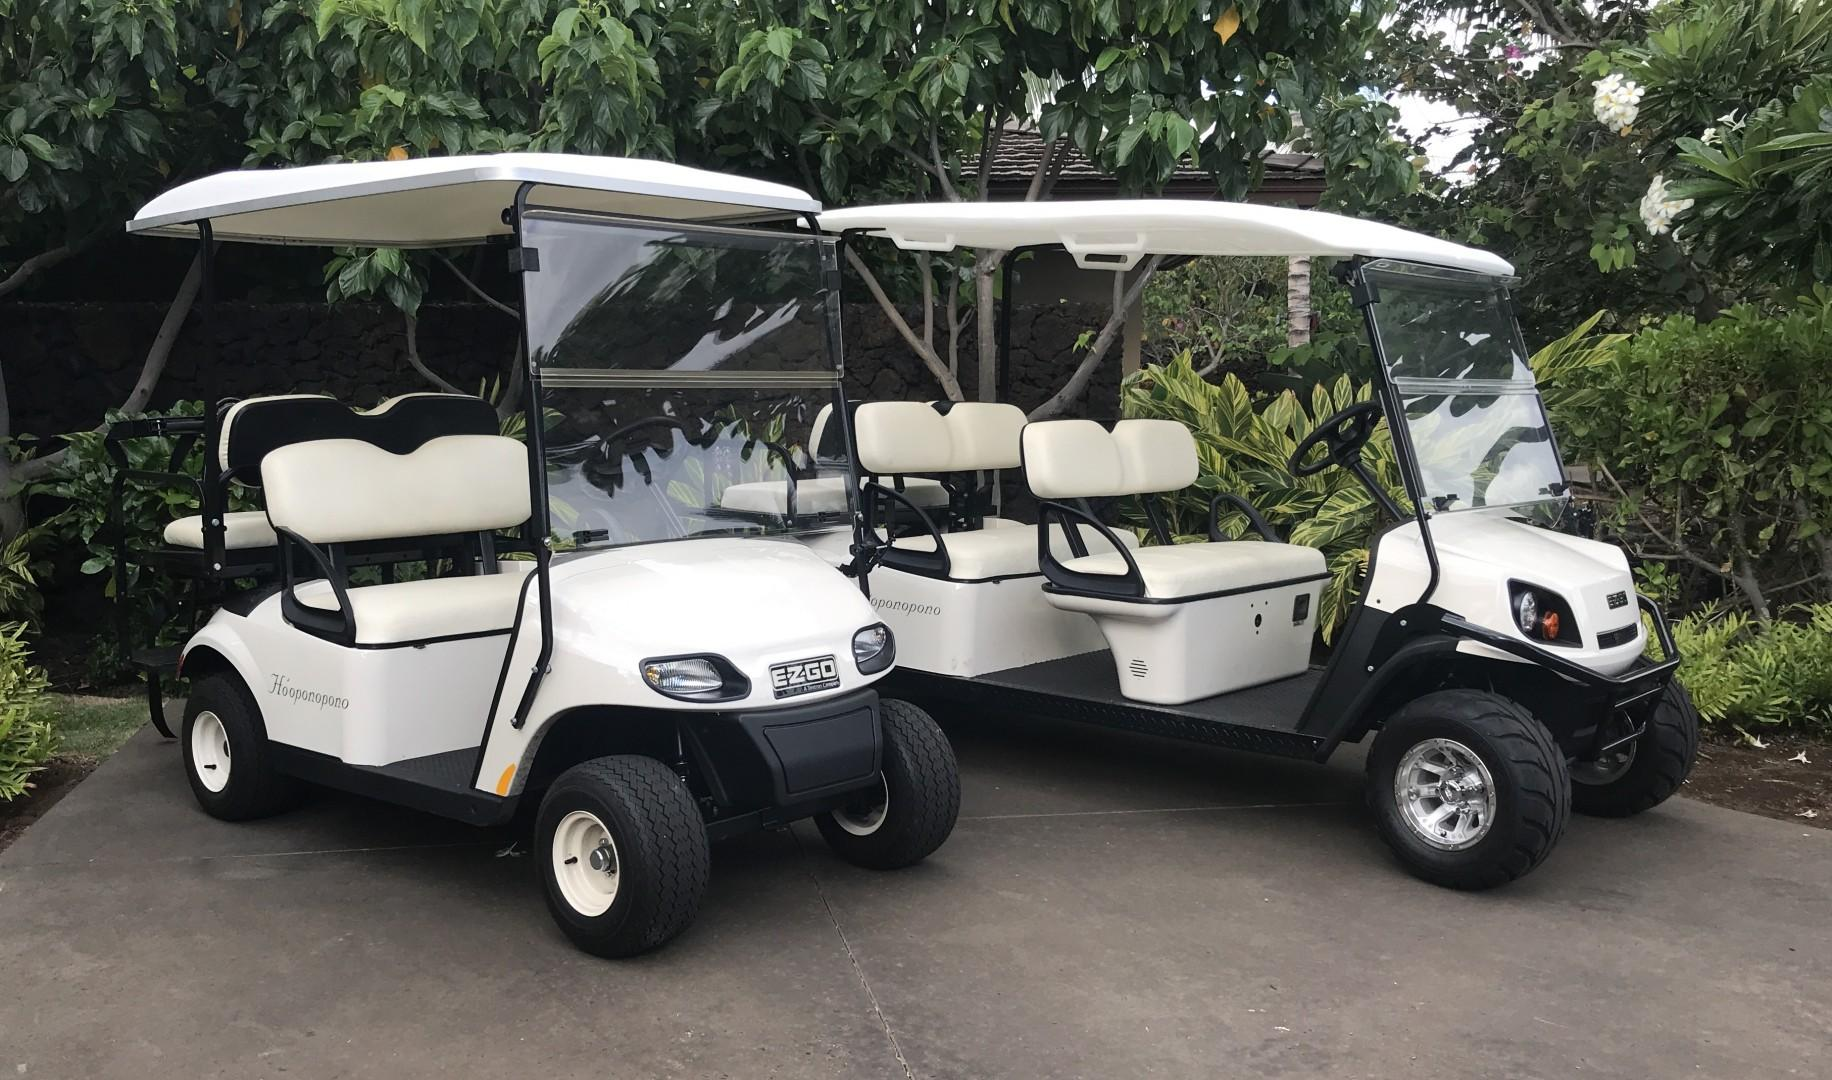 2 golf carts, one 4-seater and one 6-seater, are included in your rental for cruising the dazzling resort grounds in style!